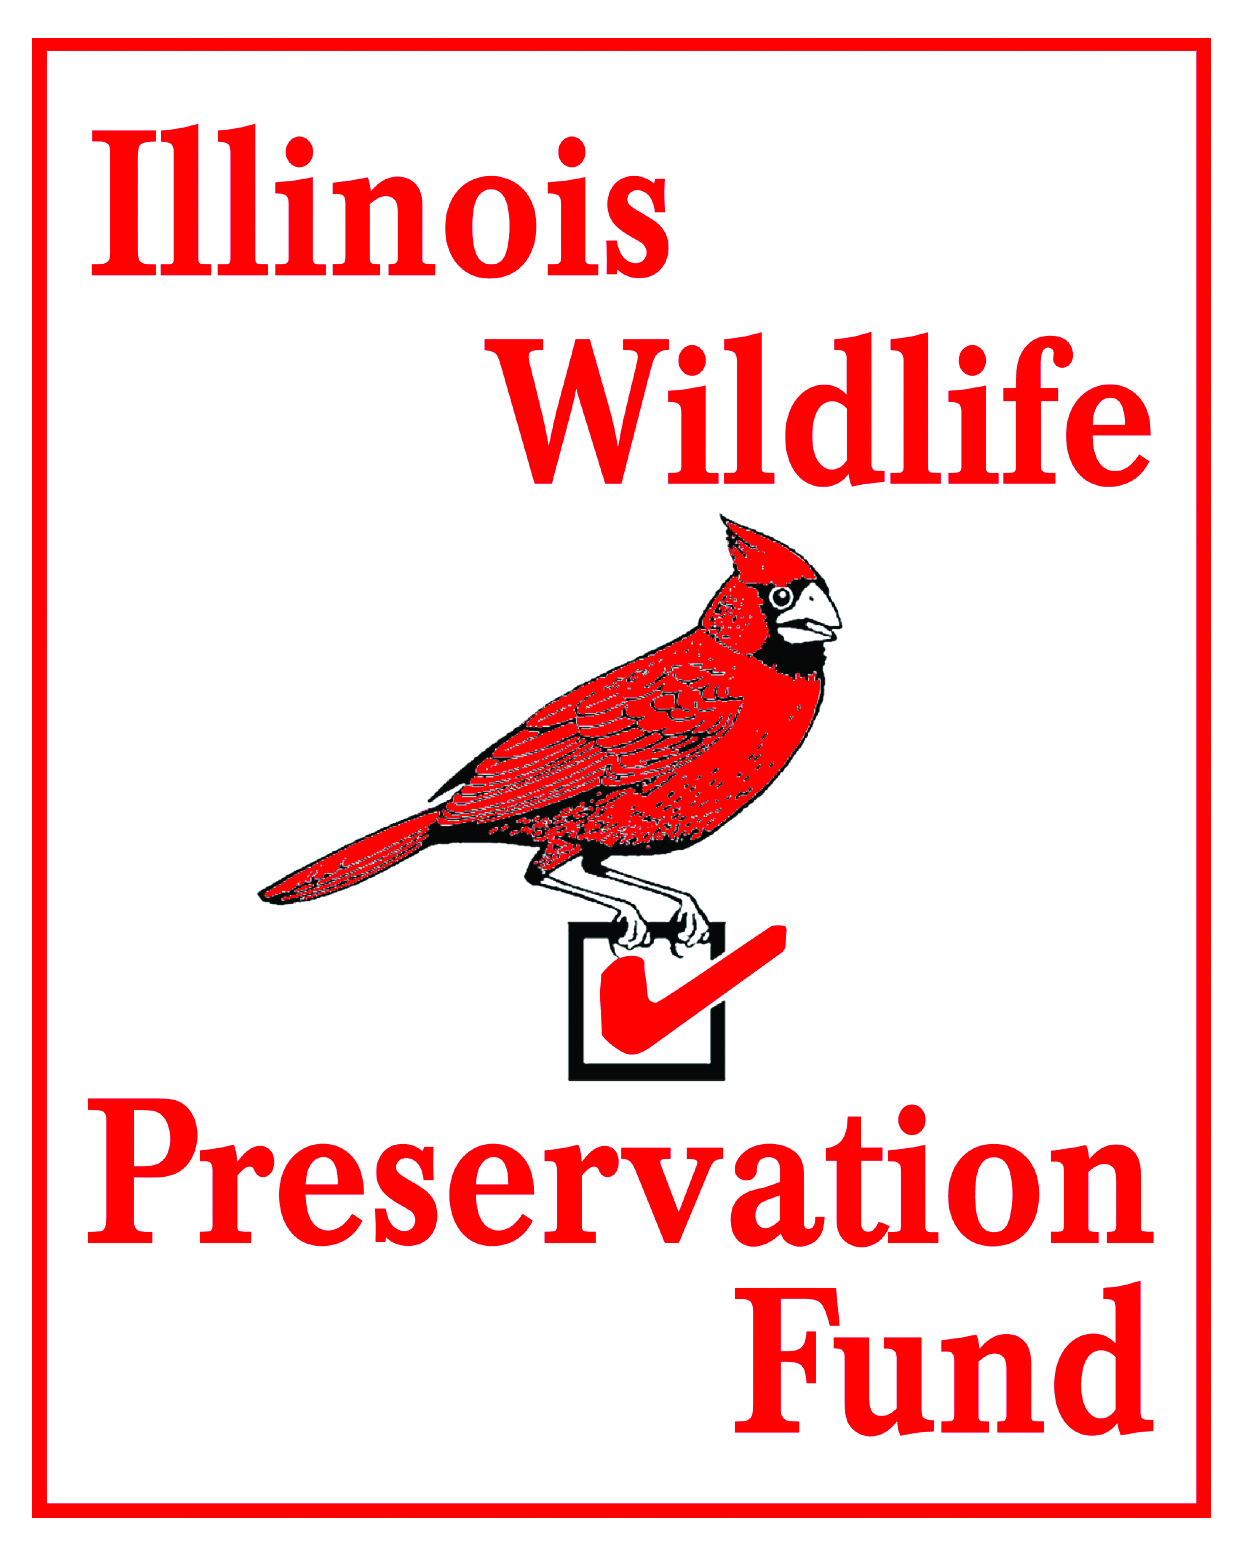 The logo for the Illinois Wildlife Preservation Fund. The logo has a red rectangular outline, and inside the outline is the words Illinois Wildlife Preservation Fund. The words surround a red cardinal bird perching on a check box with a red check.